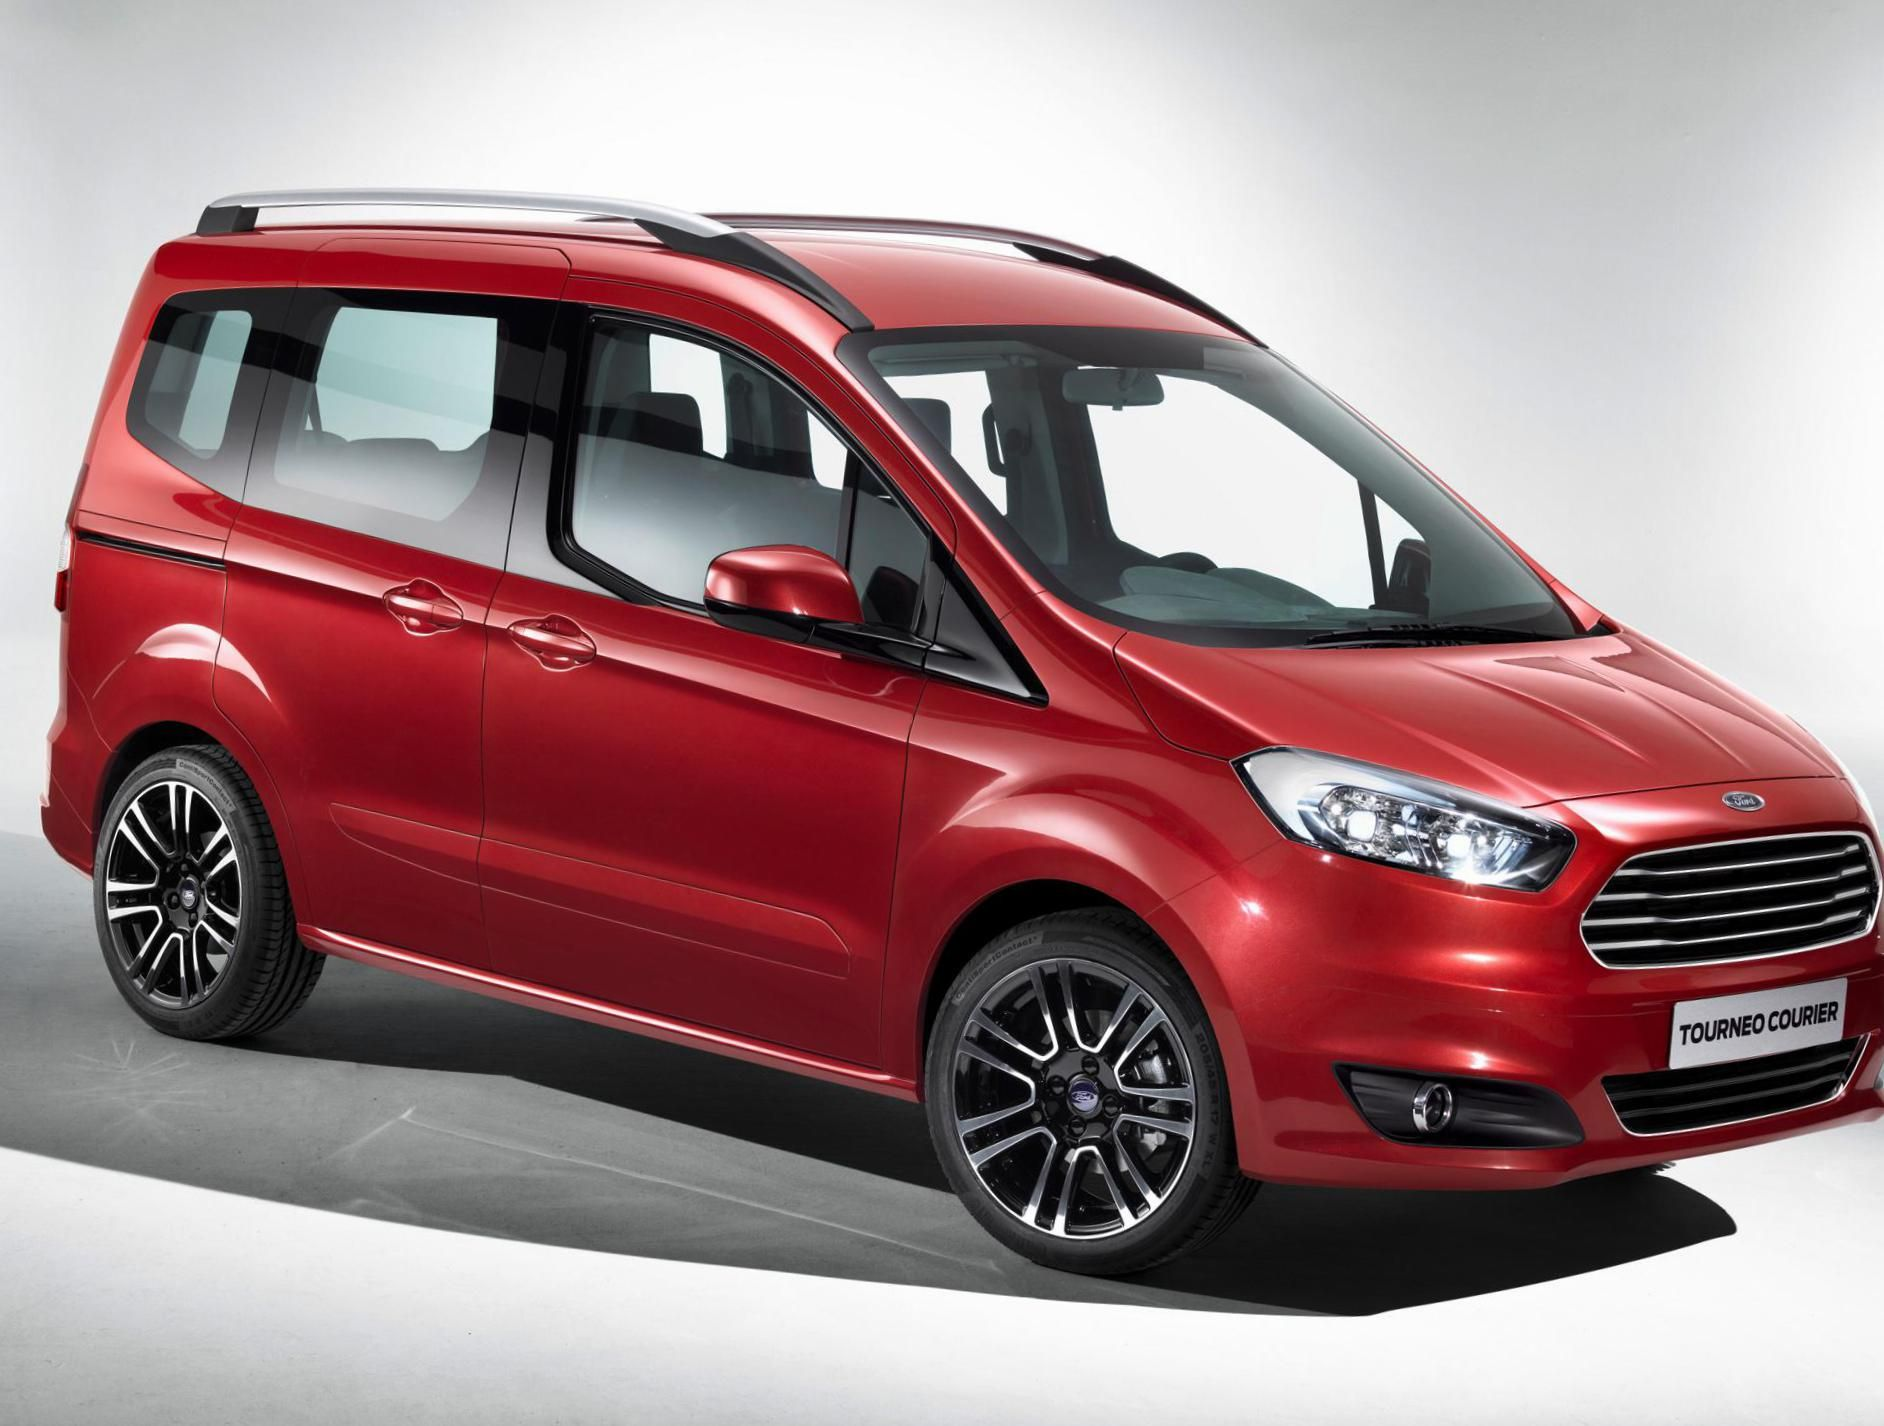 Tourneo Courier Ford Characteristics Http Autotras Com Ford